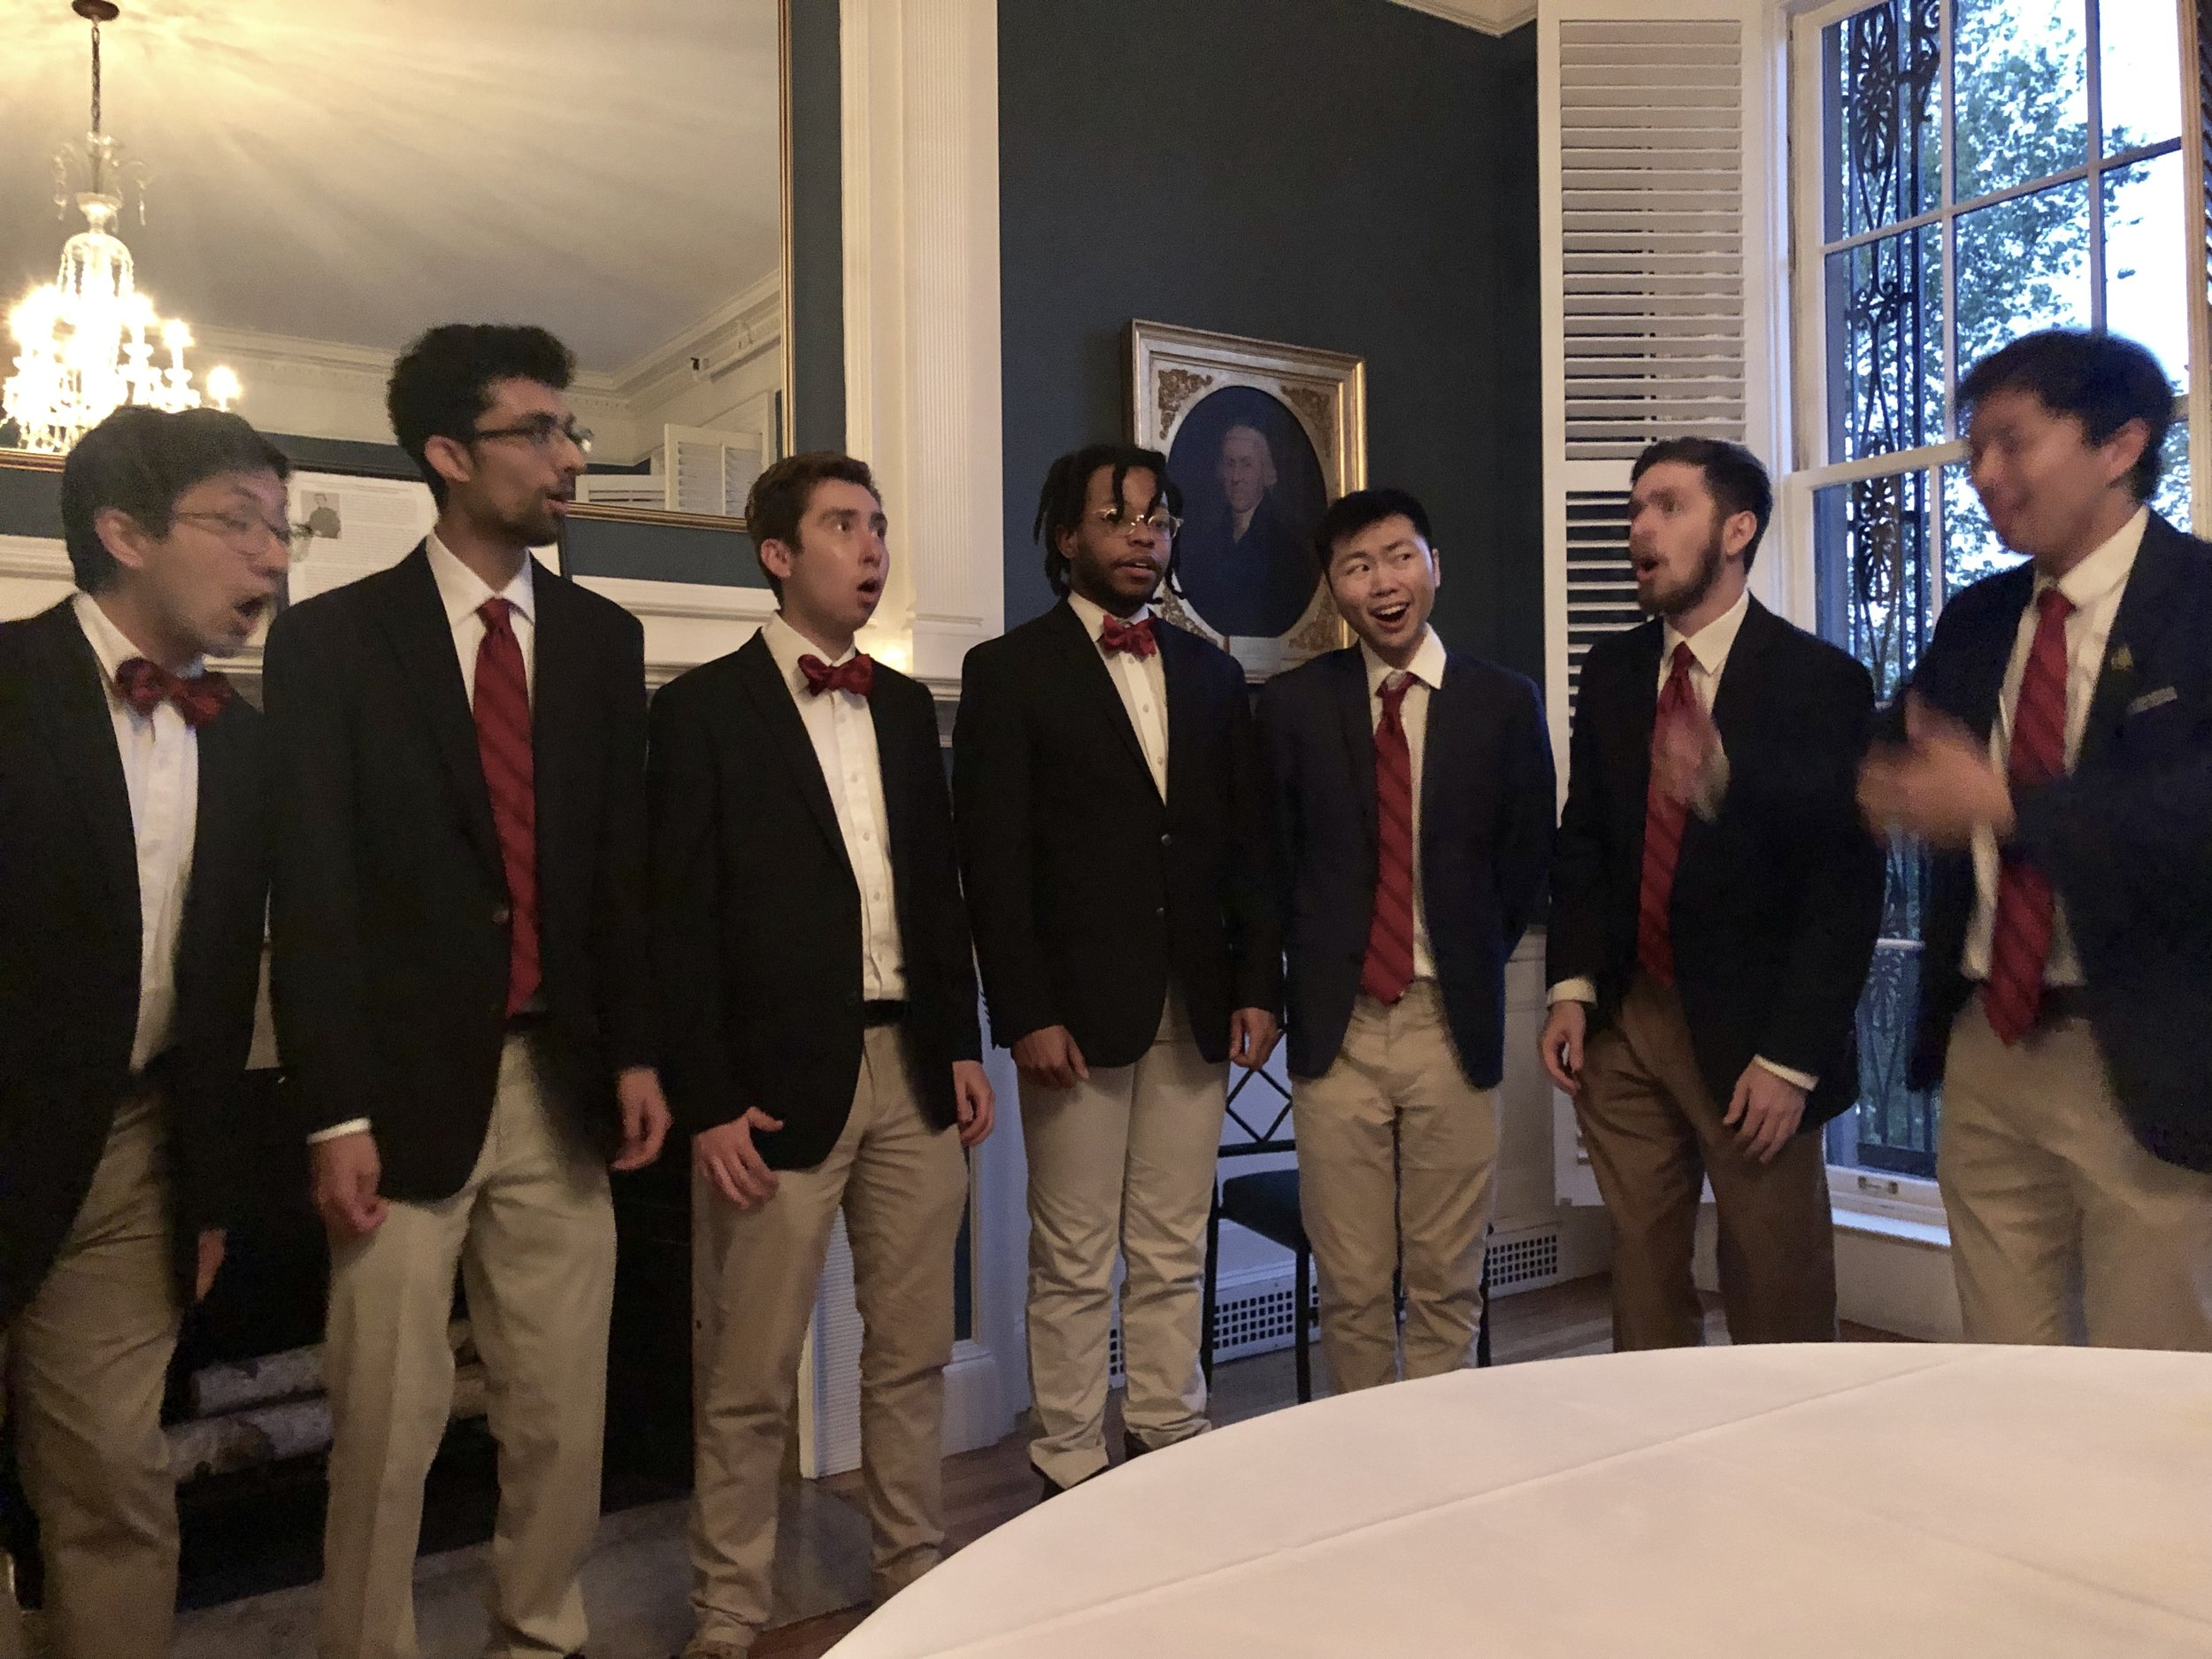 On May 24, 2019, the IDA hosted the Iconographic Society at the Union Club in Boston for a dinner and lecture on 18th century printing and binding innovator, John Howell.  Entertainment was provided by the Harvard Glee Club.